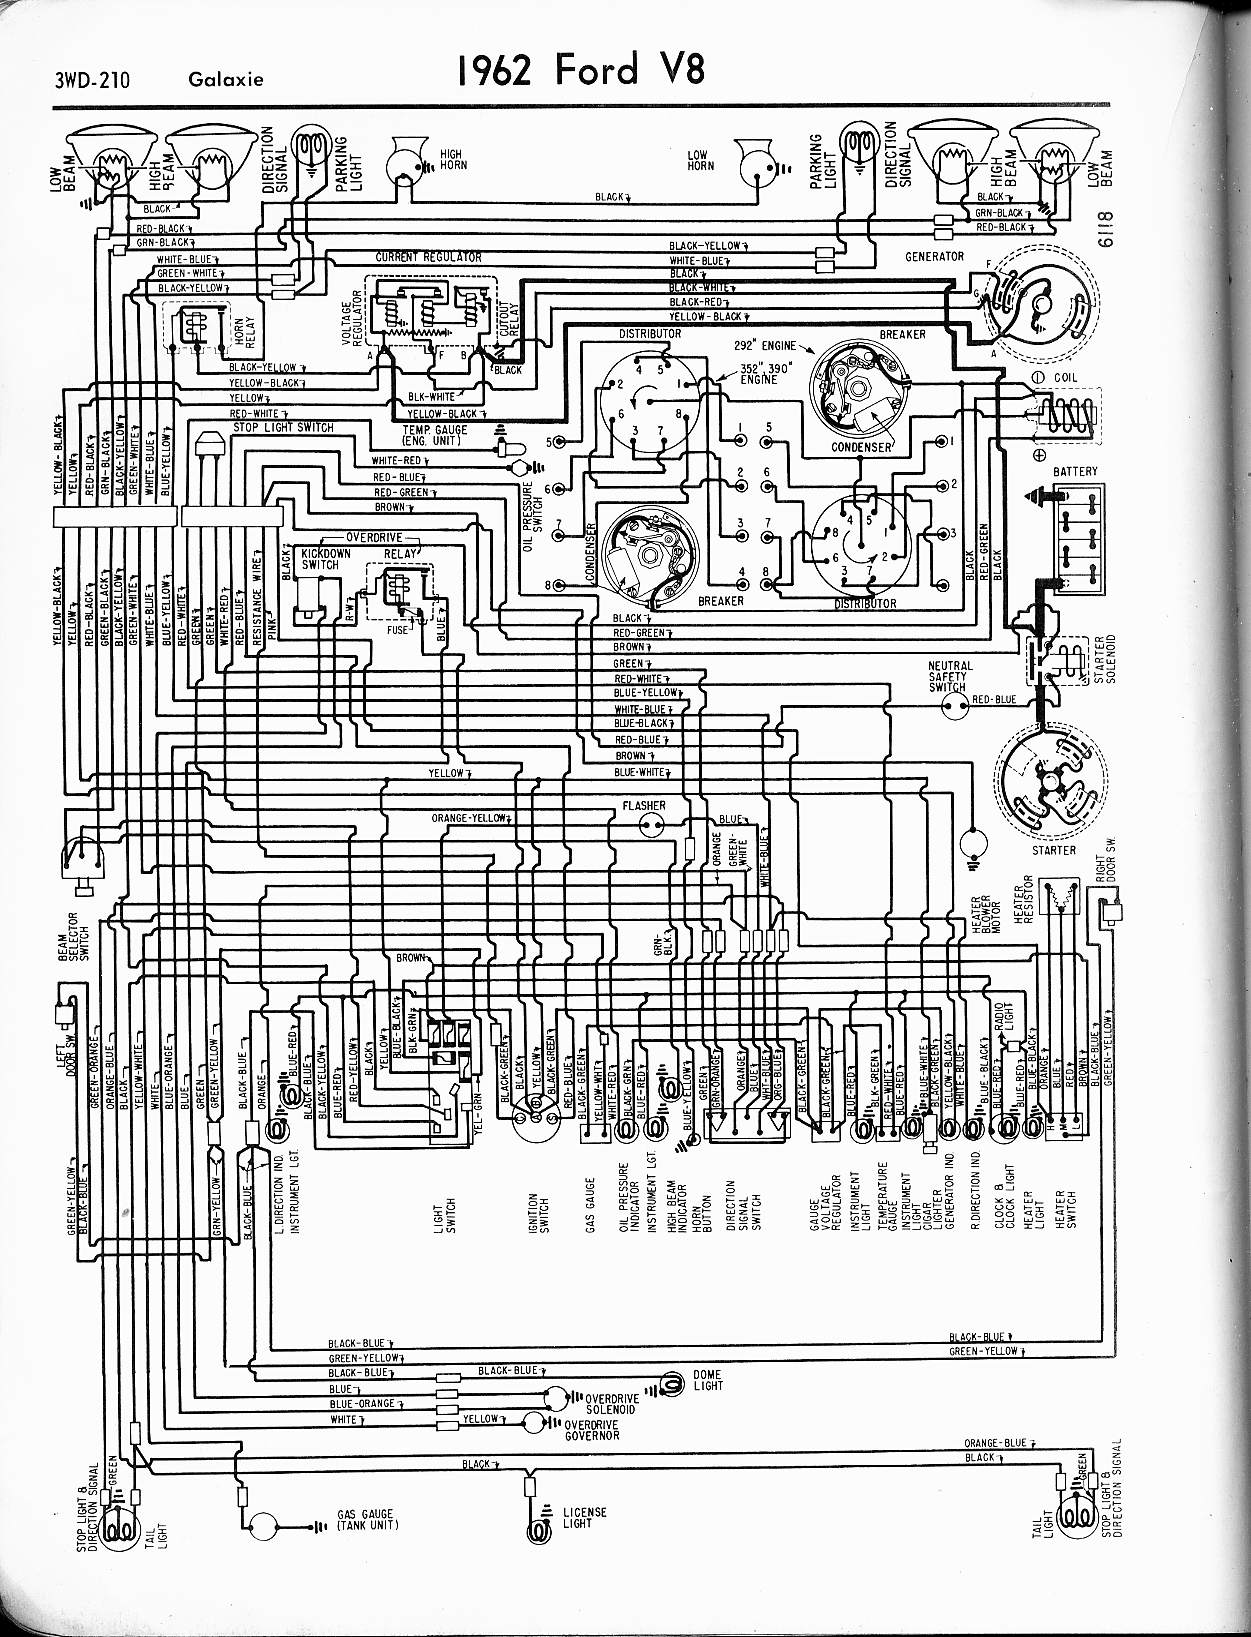 57 65 ford wiring diagrams  1970 thunderbird instrument cluster diagram wiring schematic #27